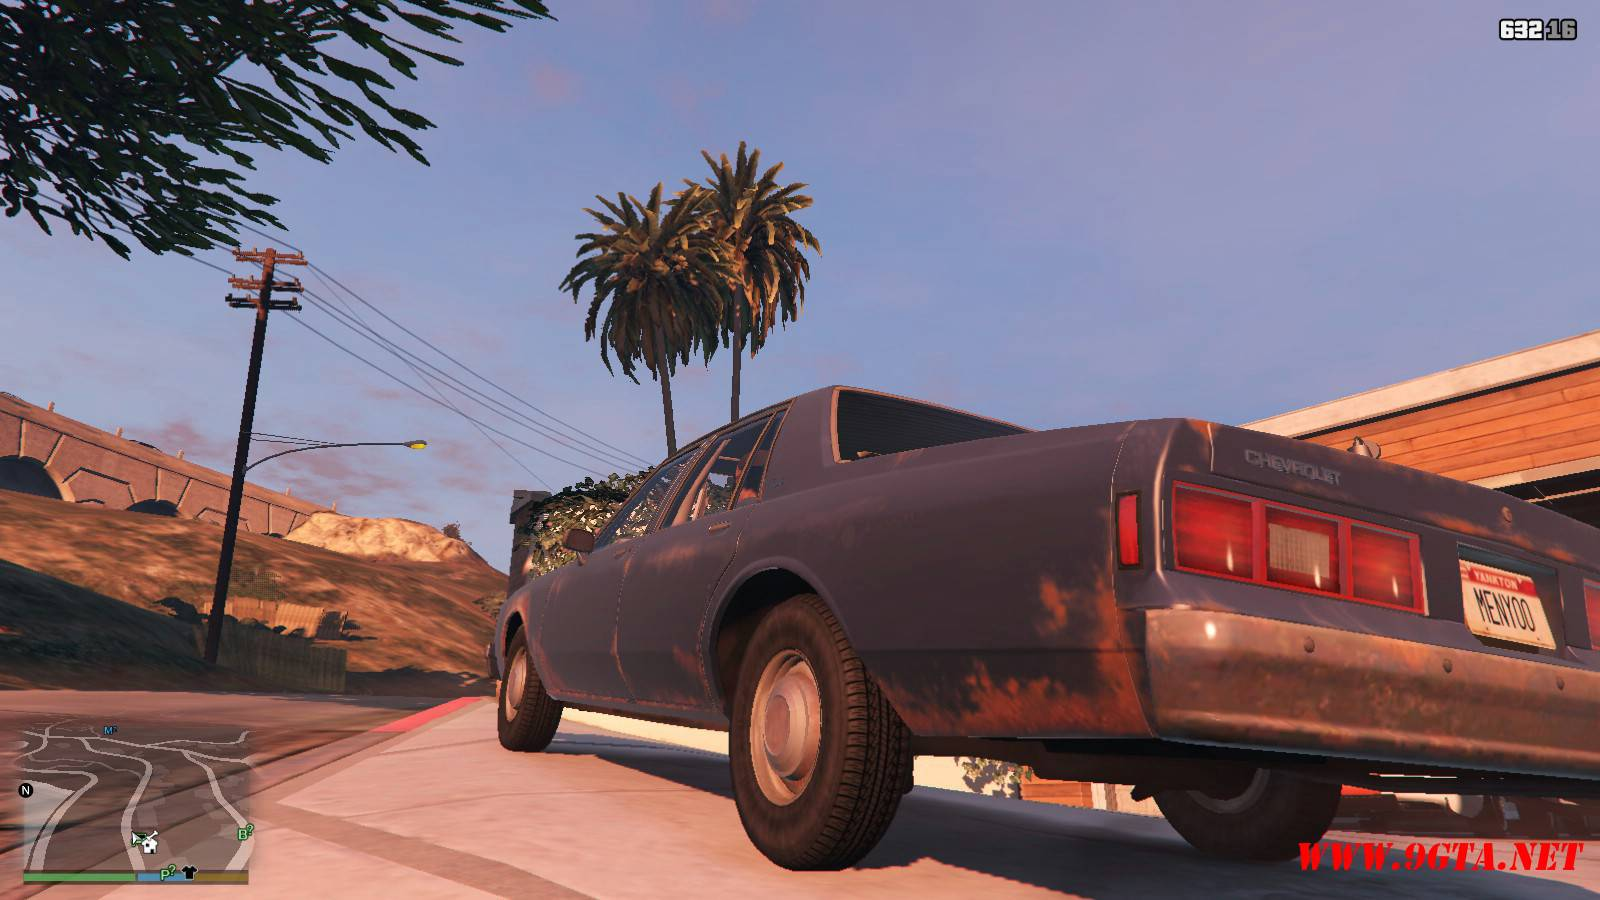 1985 Chevrolet Impala v1.1 Mod For GTA5 (3)